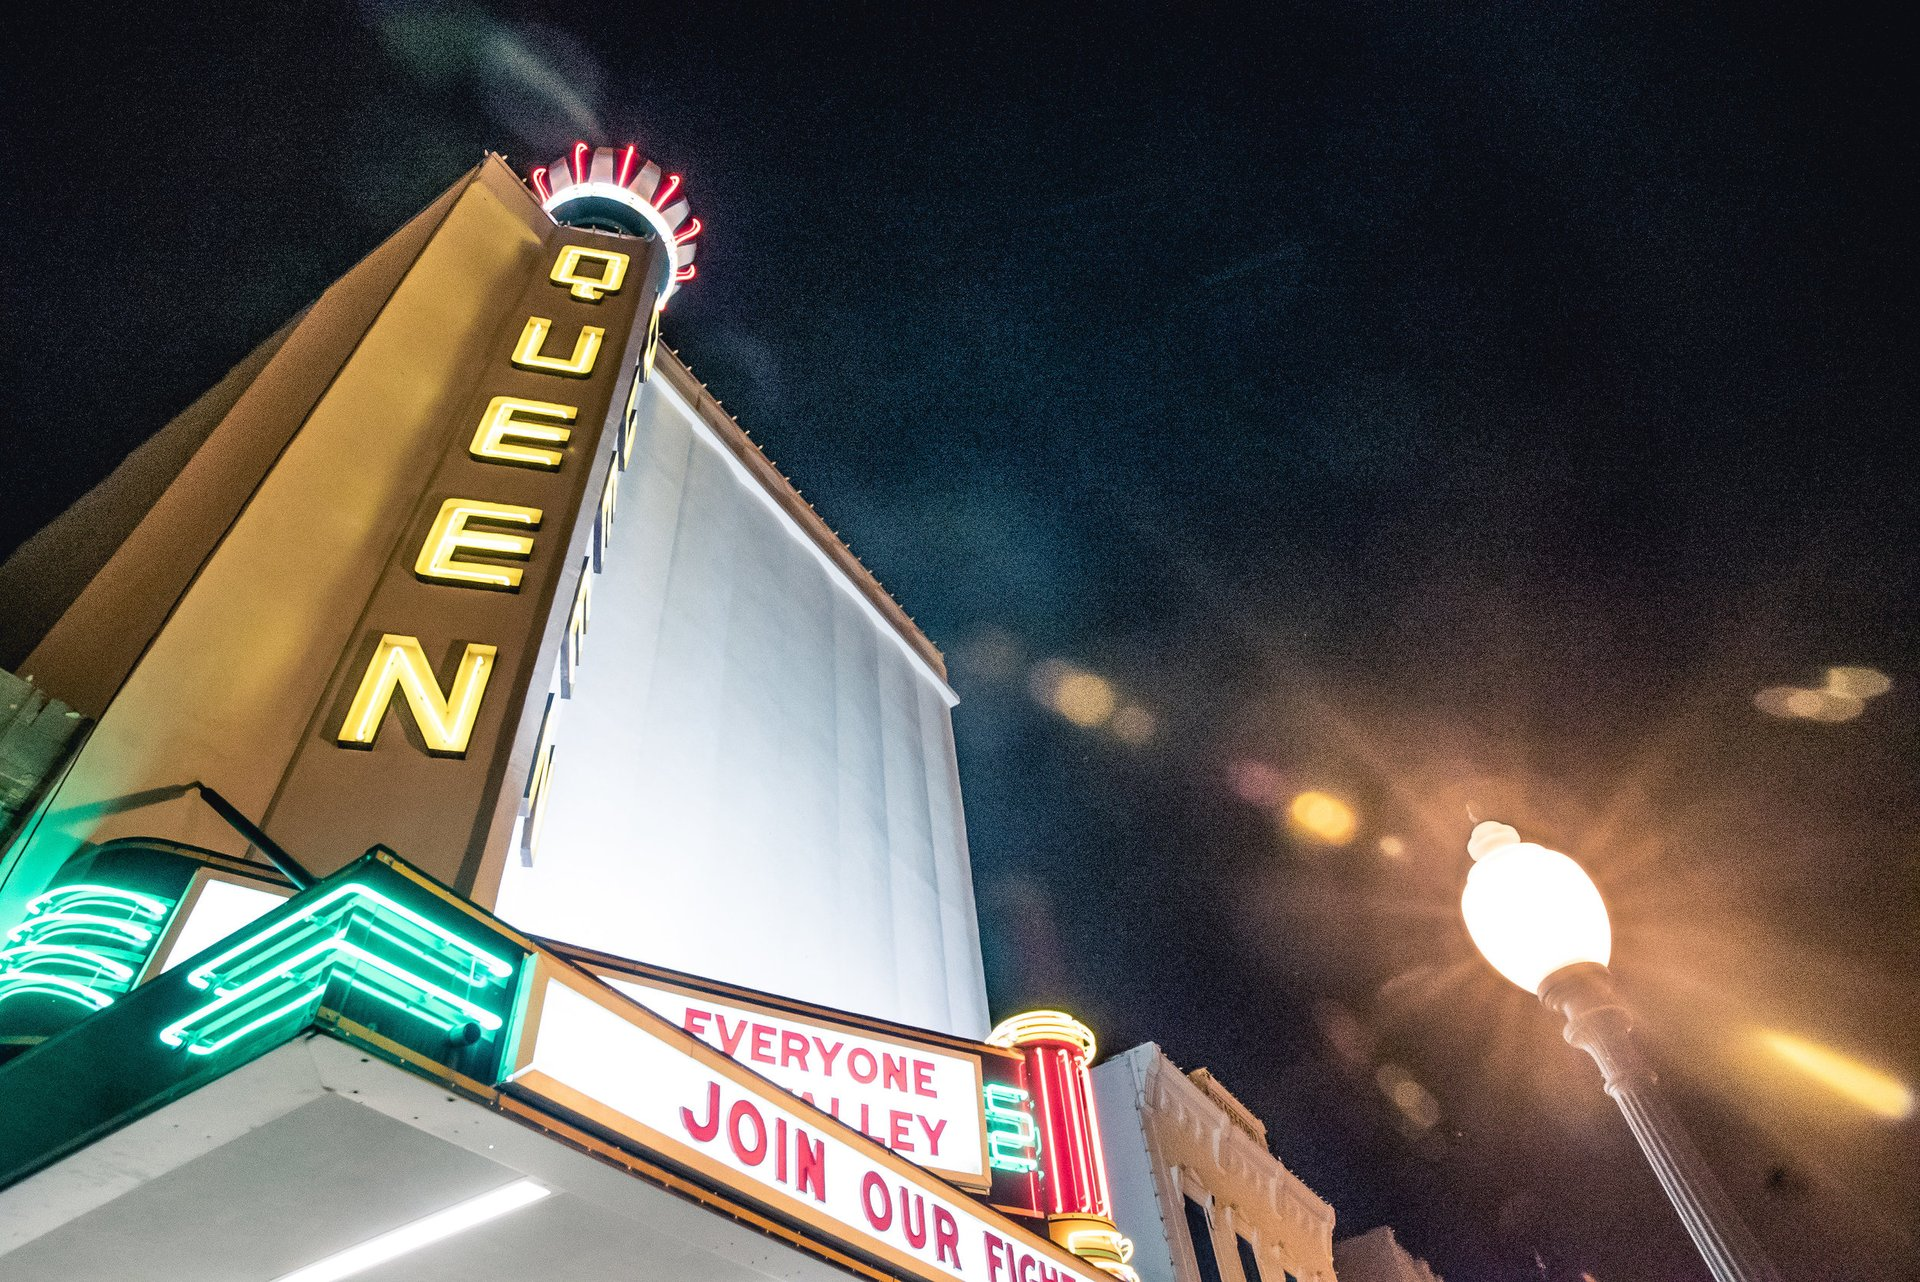 theater image outside